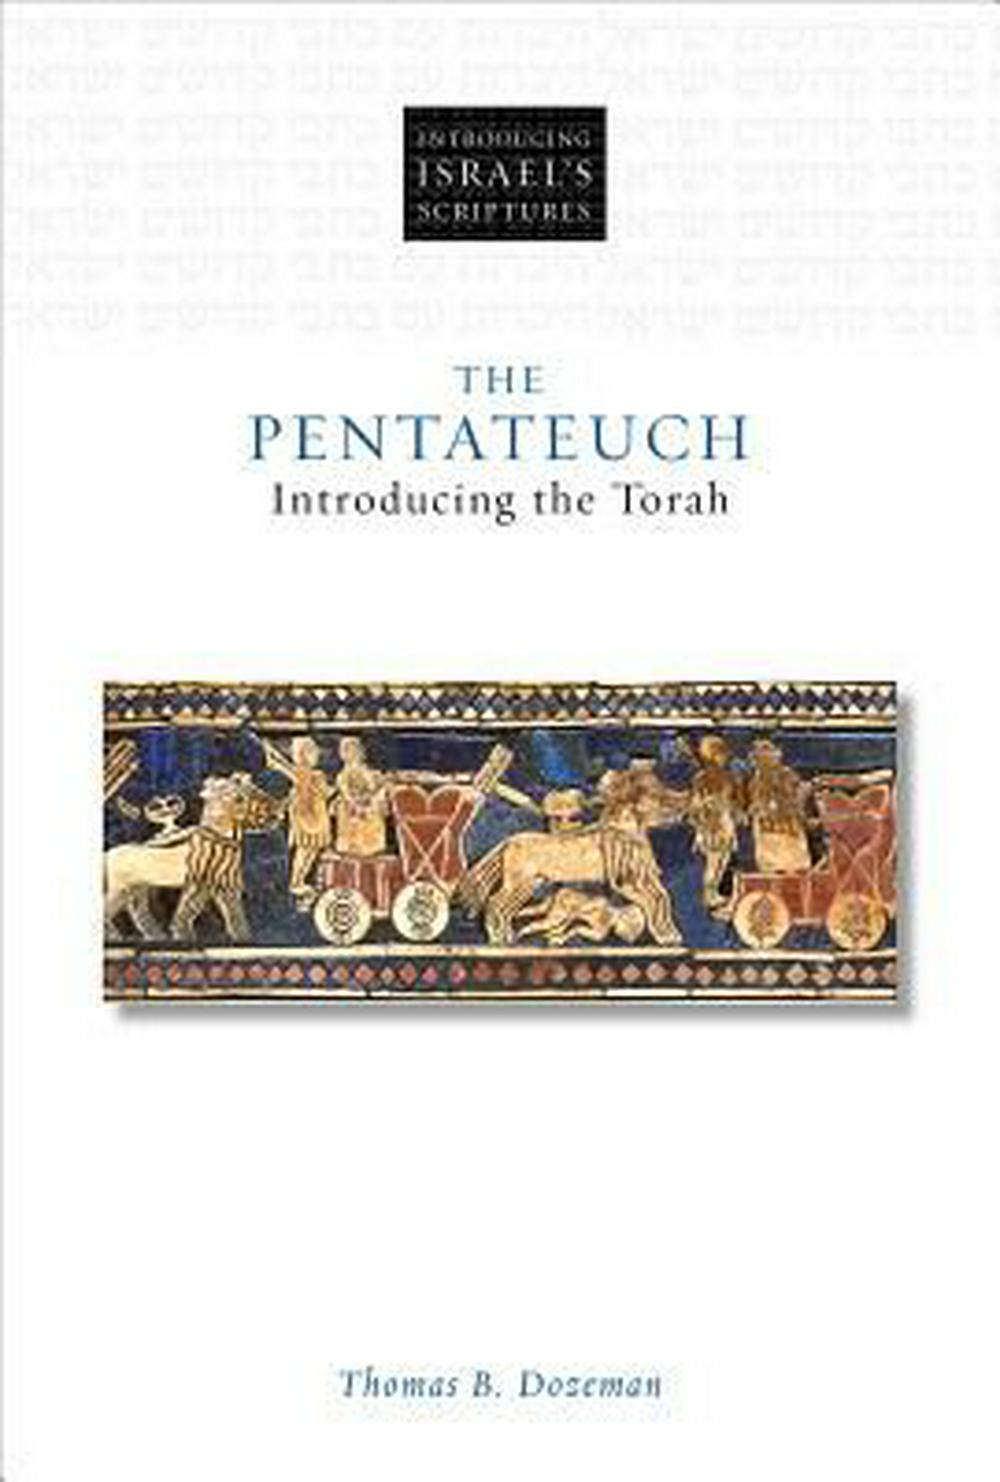 The PentateuchIntroducing the Torah